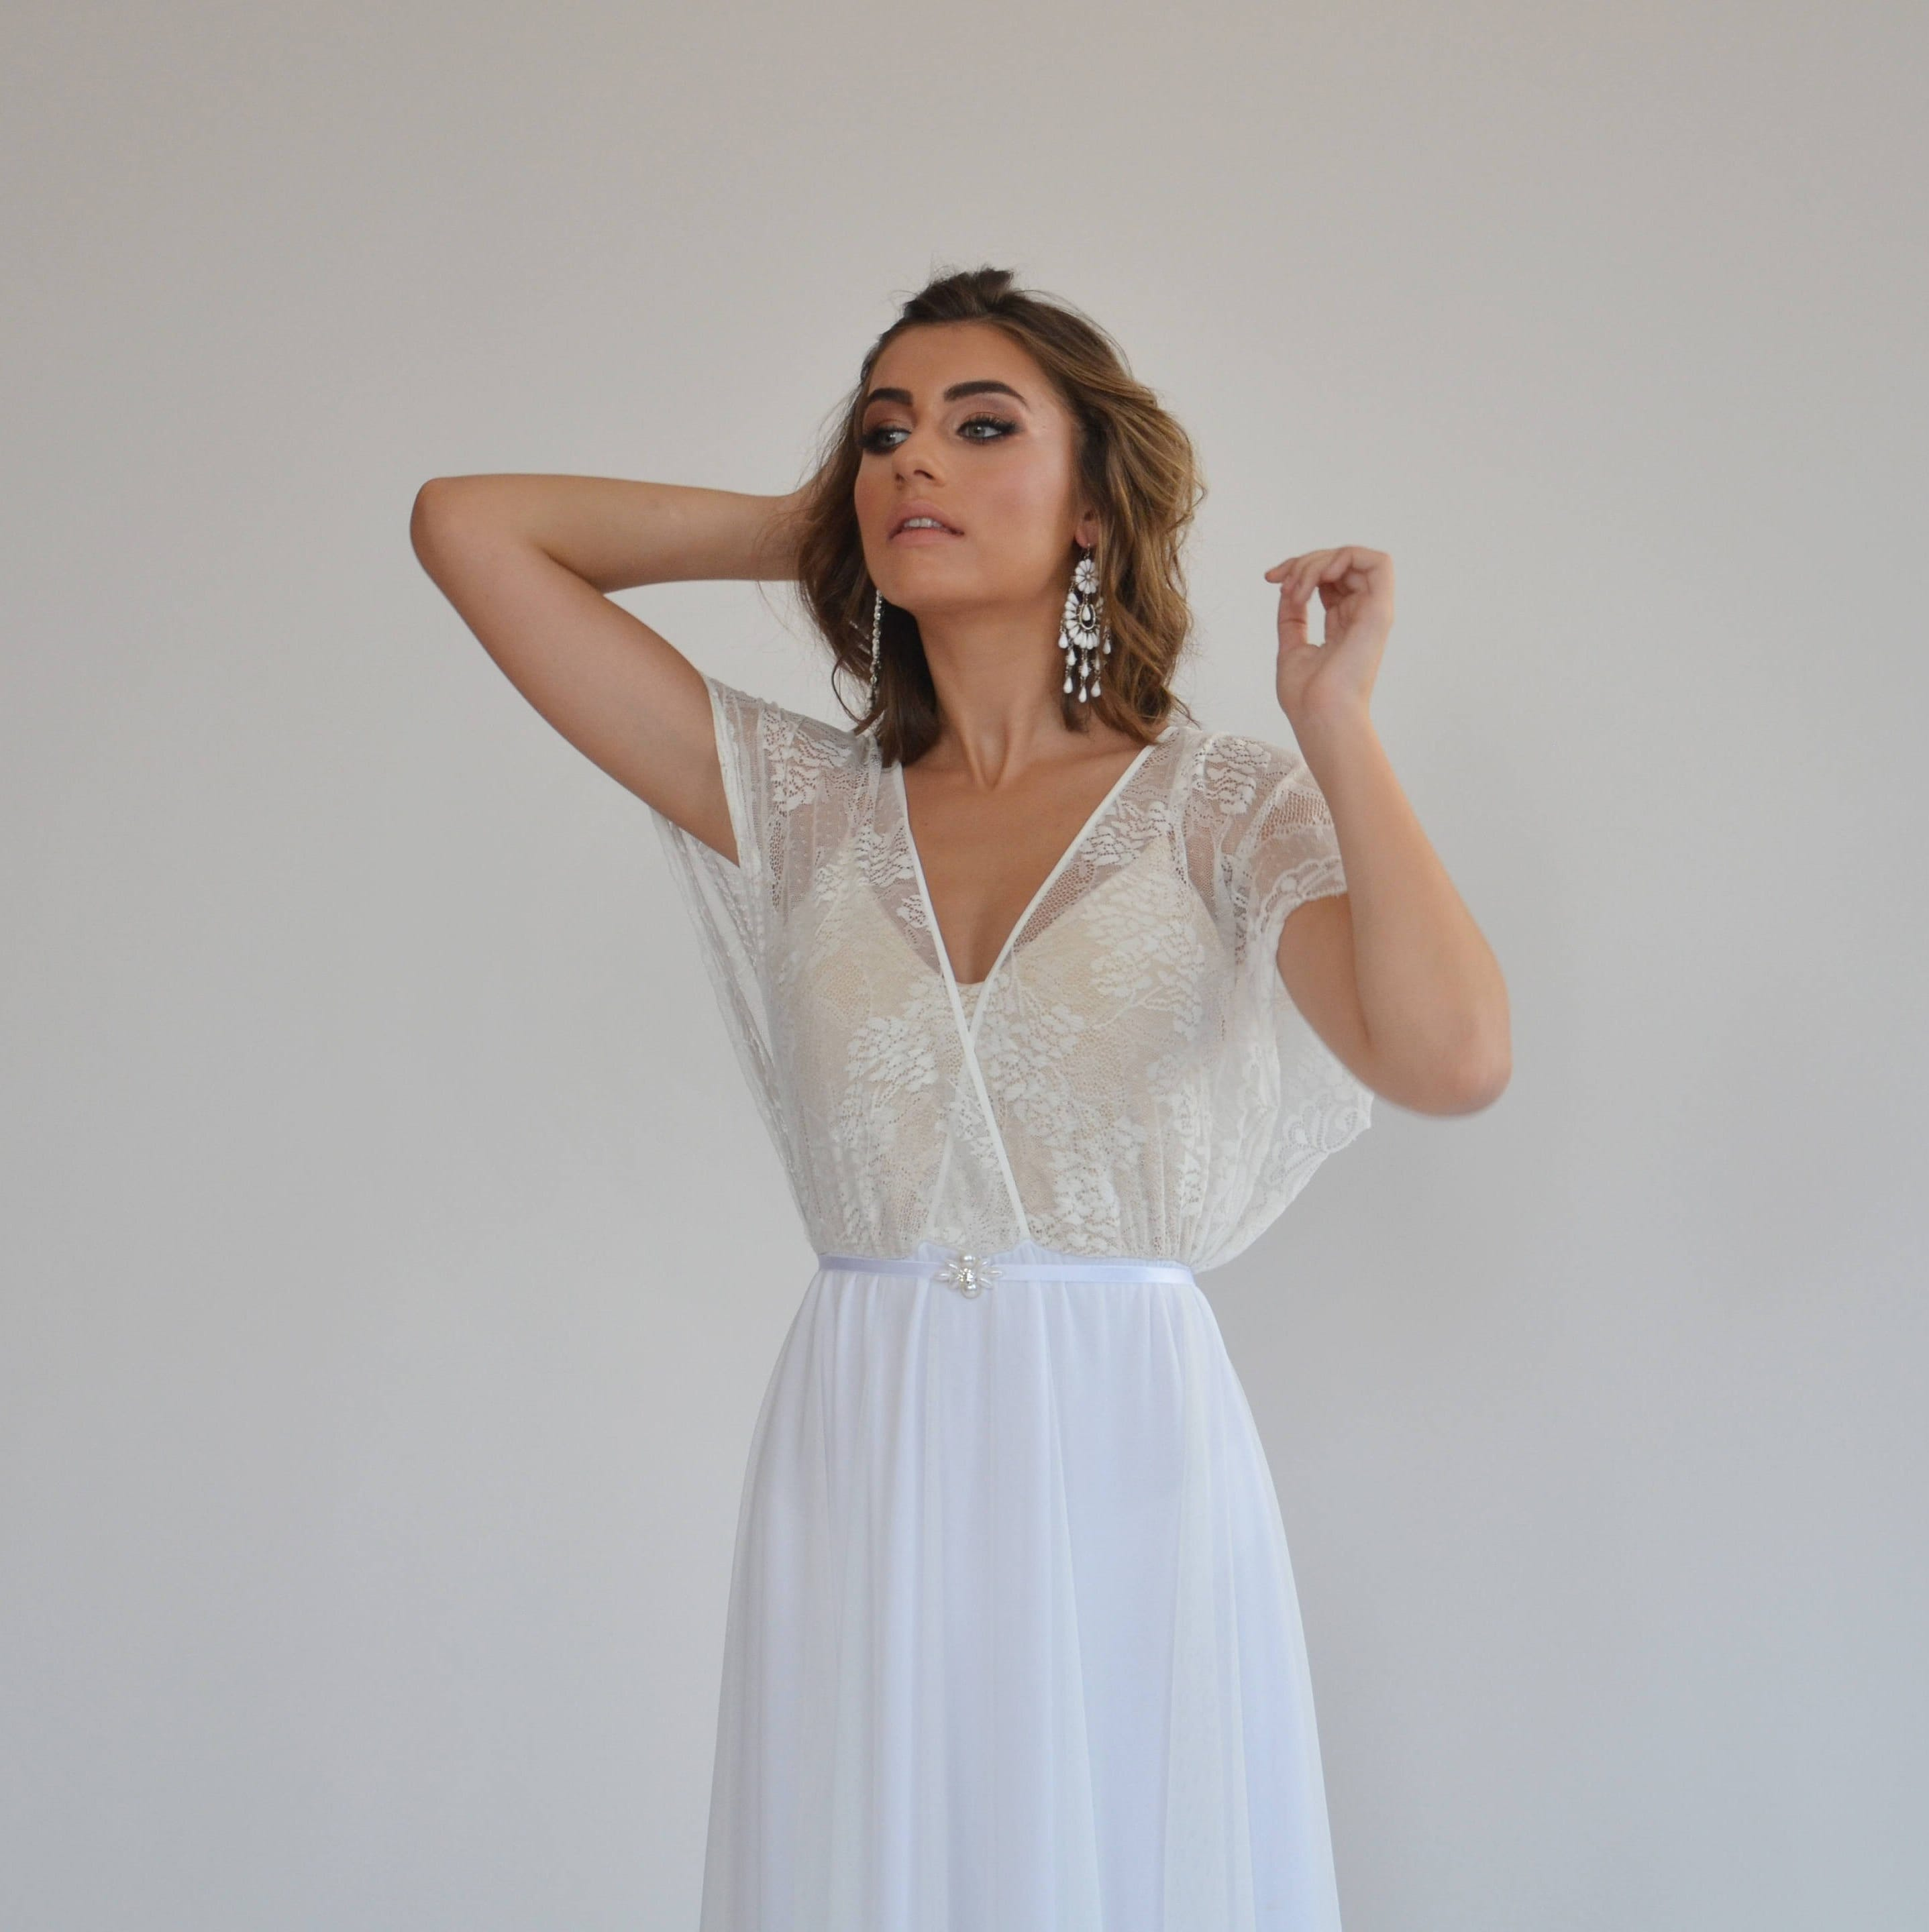 Wedding Dress With Lace Top And Short Lace Sleeves Wedding Dress Simple Wedding Dress Casual Wedding Dress Boho Wedding Dress